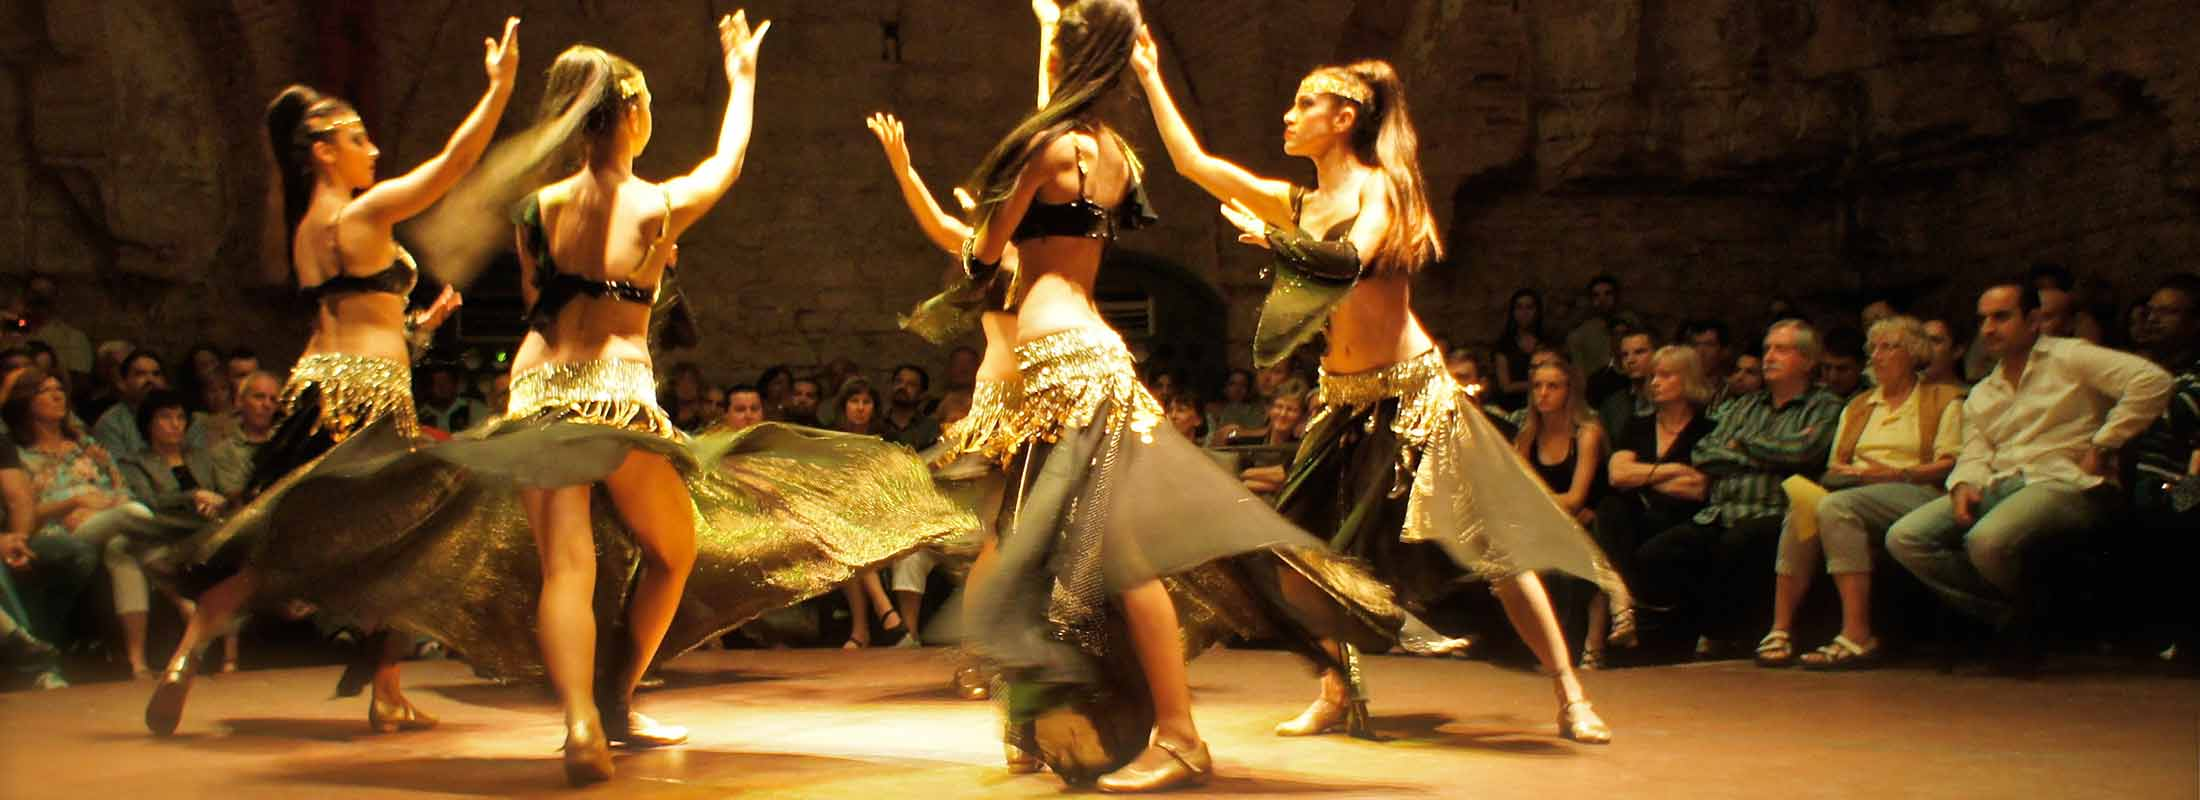 Belly Dancing shows Istanbul